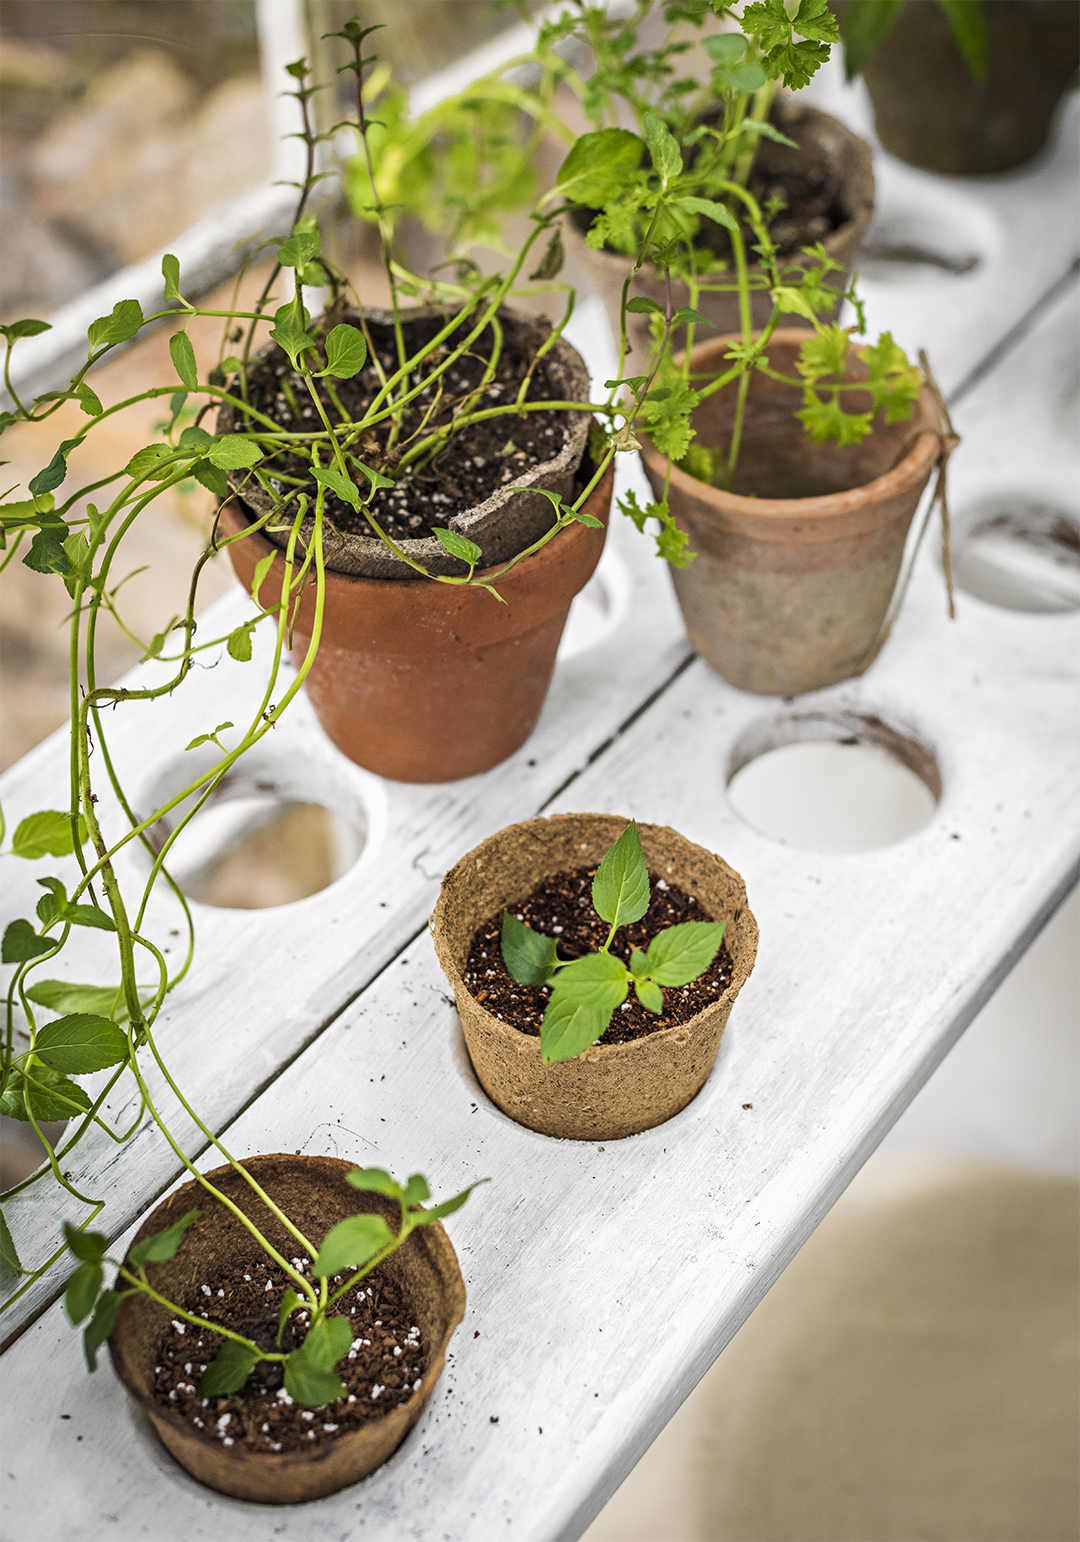 DIY seedling worktable with pots and plants